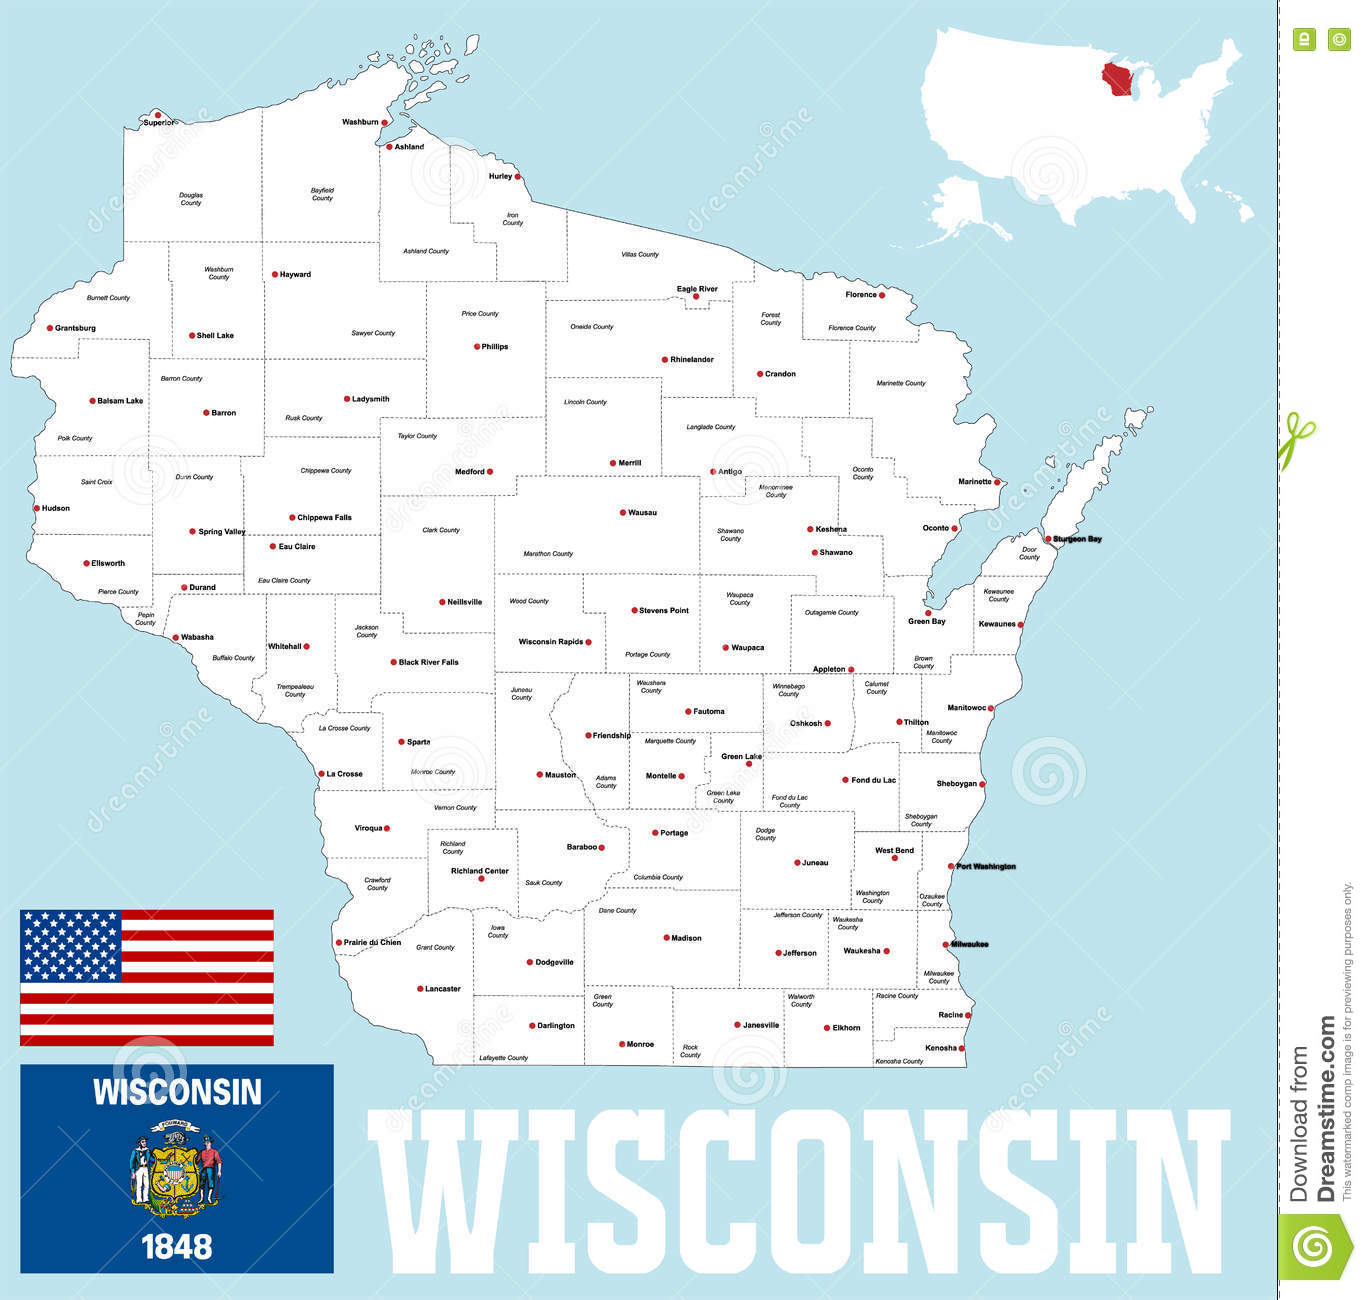 Wisconsin county map stock vector. Illustration of green - 78880356